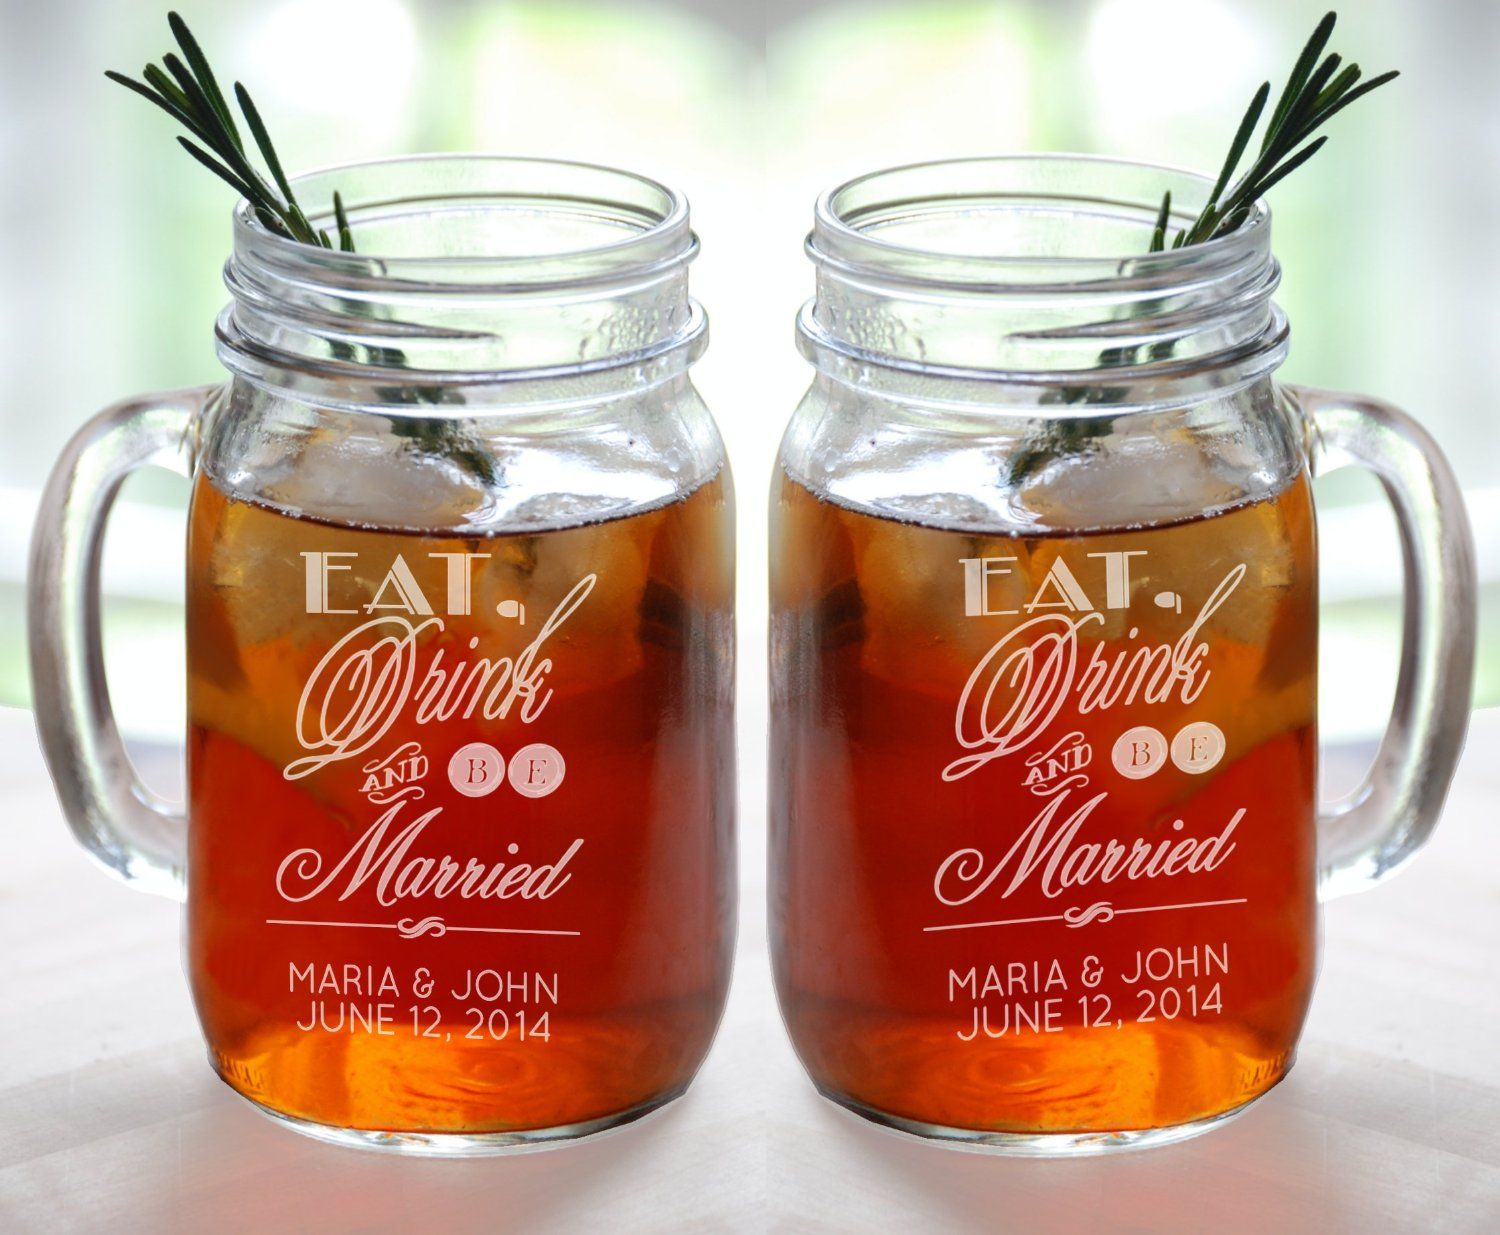 Amazon Com Eat Drink And Be Married Set Of 2 Personalized Mason Jars Drinking Mugs Personalized Mason Jars Wedding Mason Jar Wedding Mason Jar Glasses Wedding